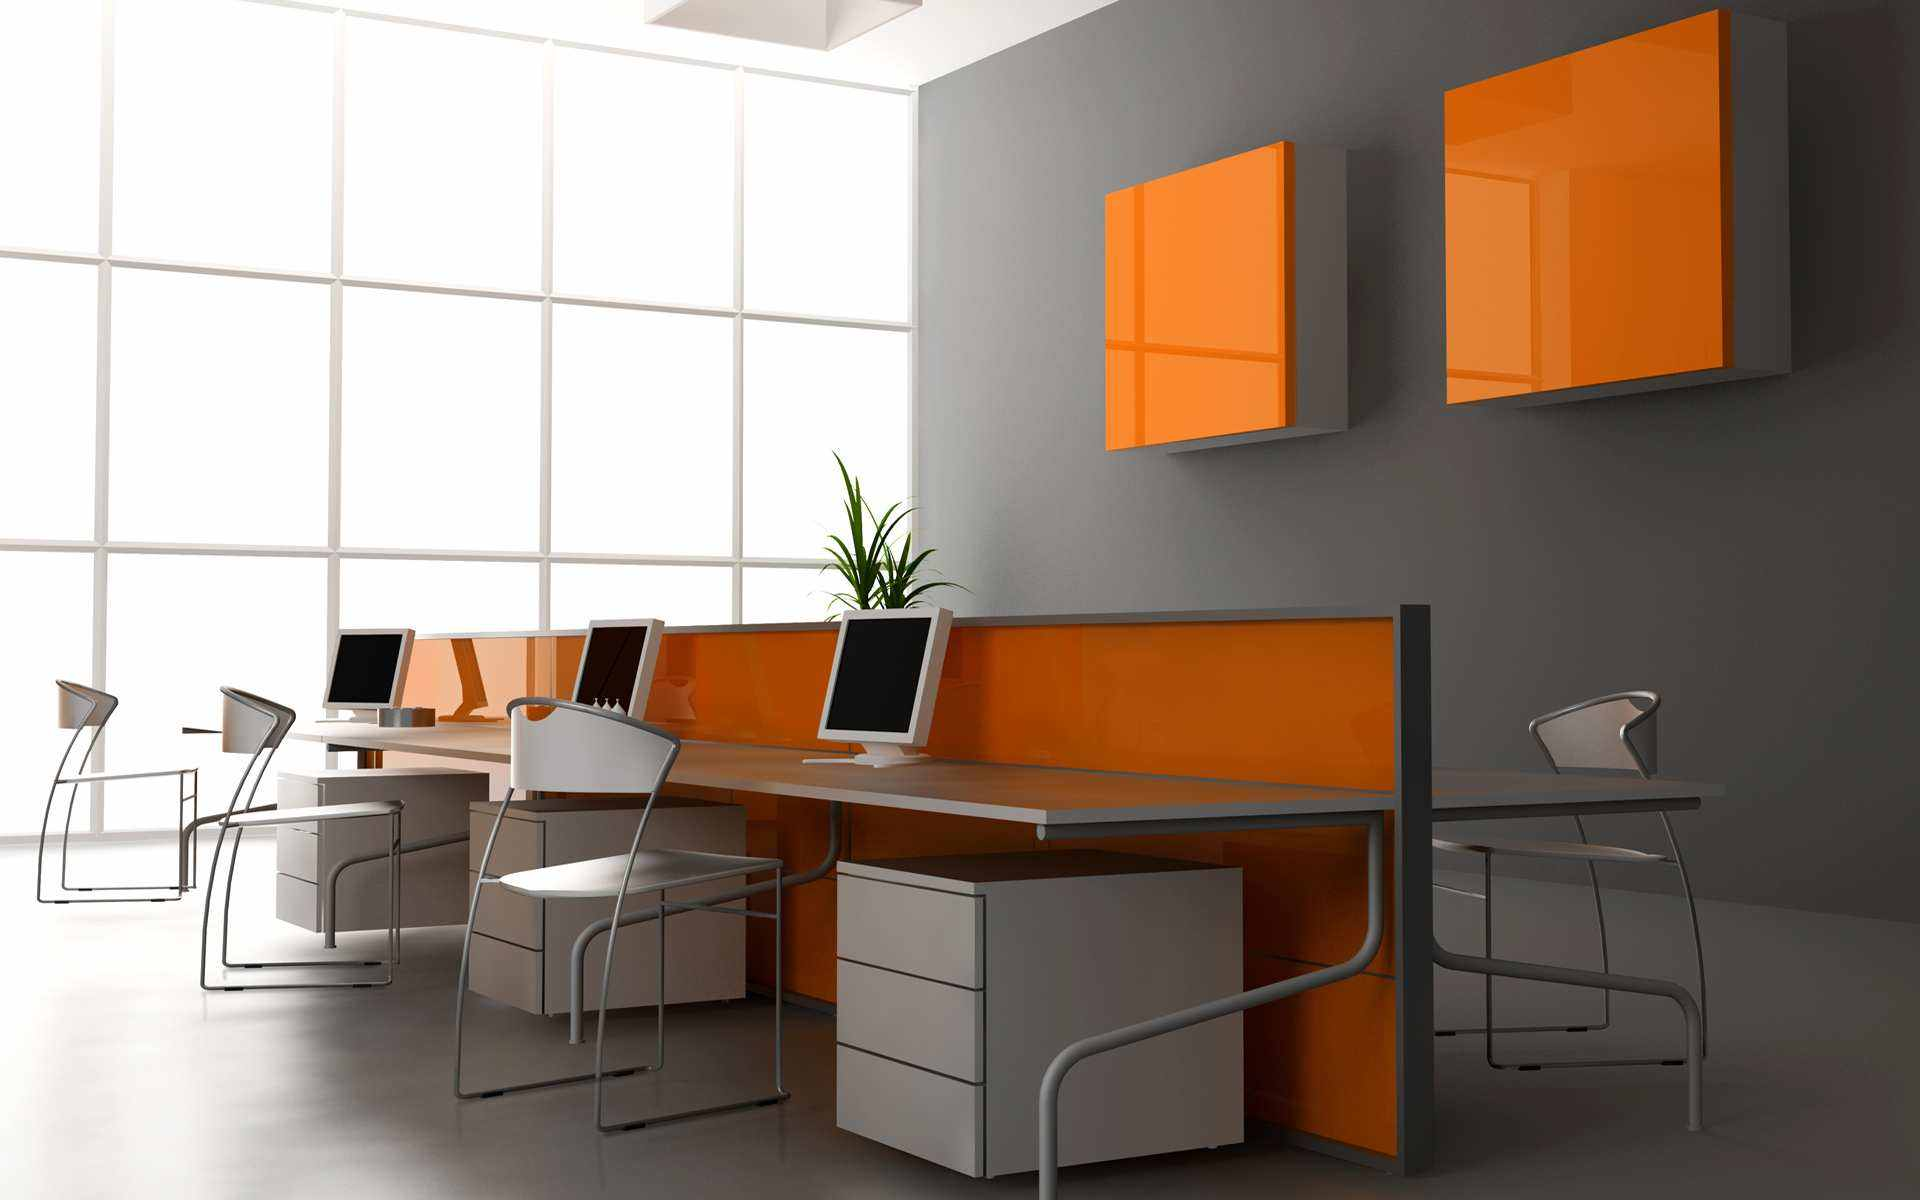 Simple plain office furniture placement